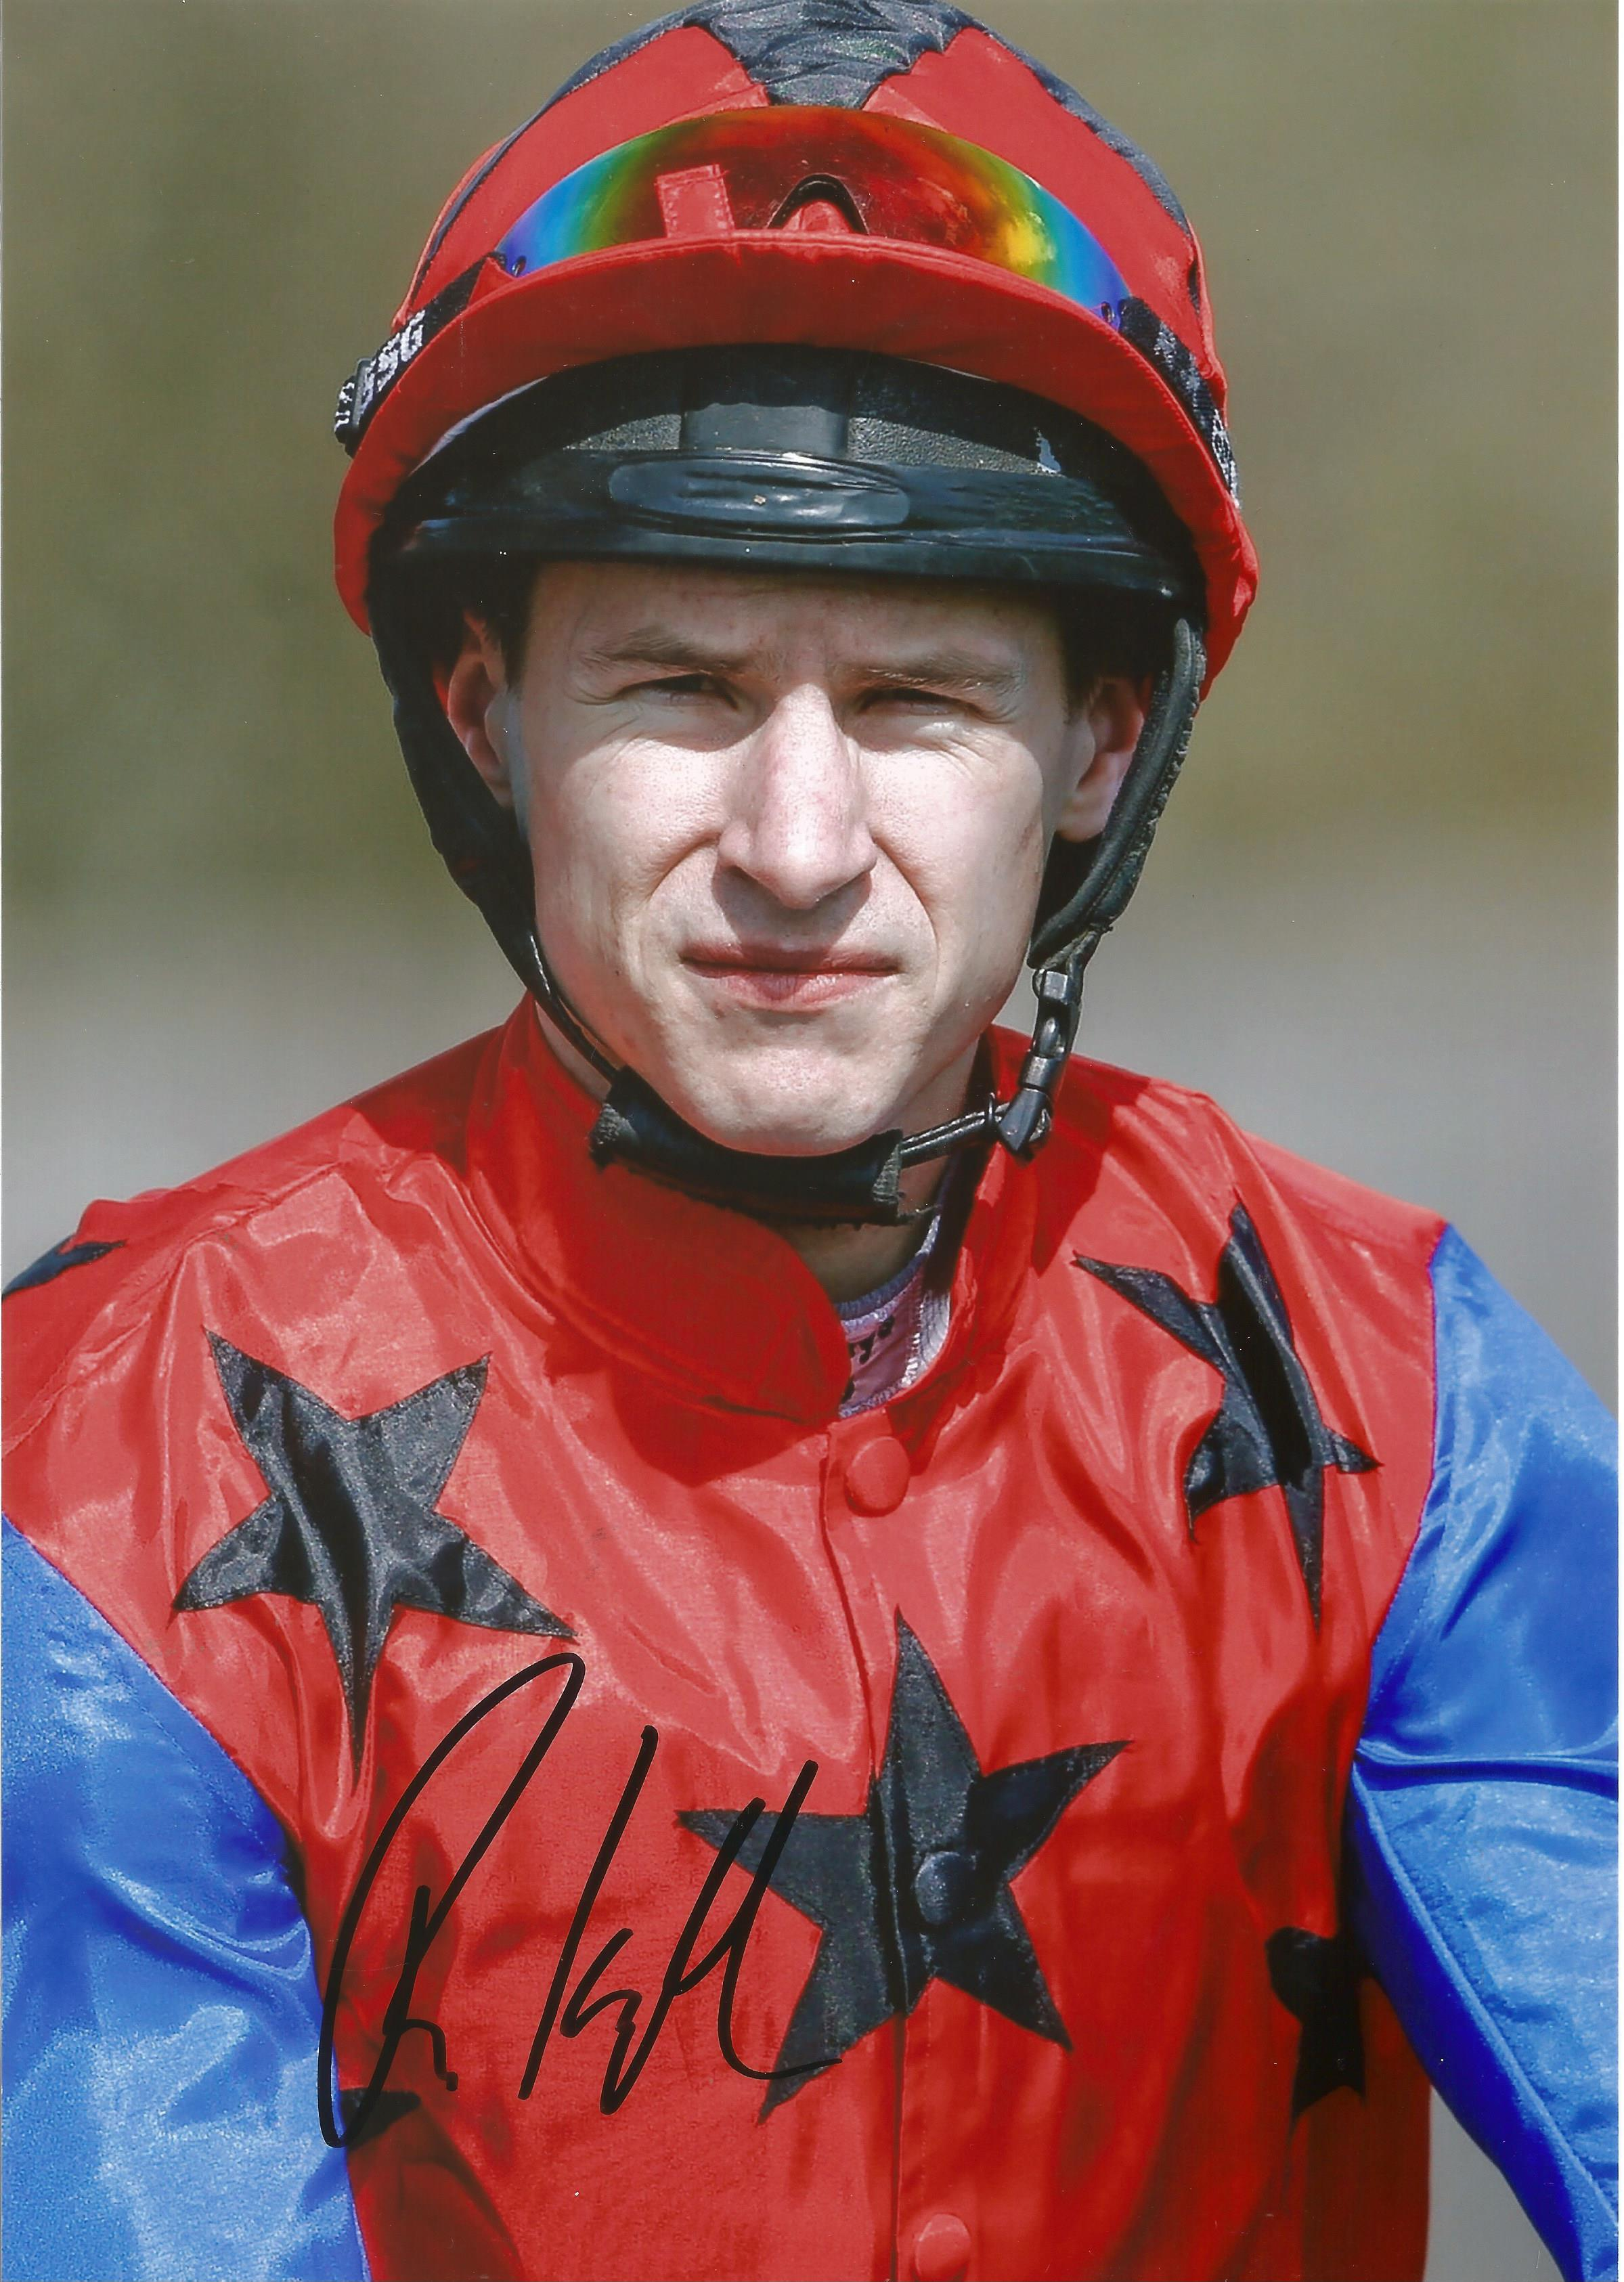 Richard Kingscote Signed Horse Racing Jockey 8x12 Photo. Good condition. All autographs come with